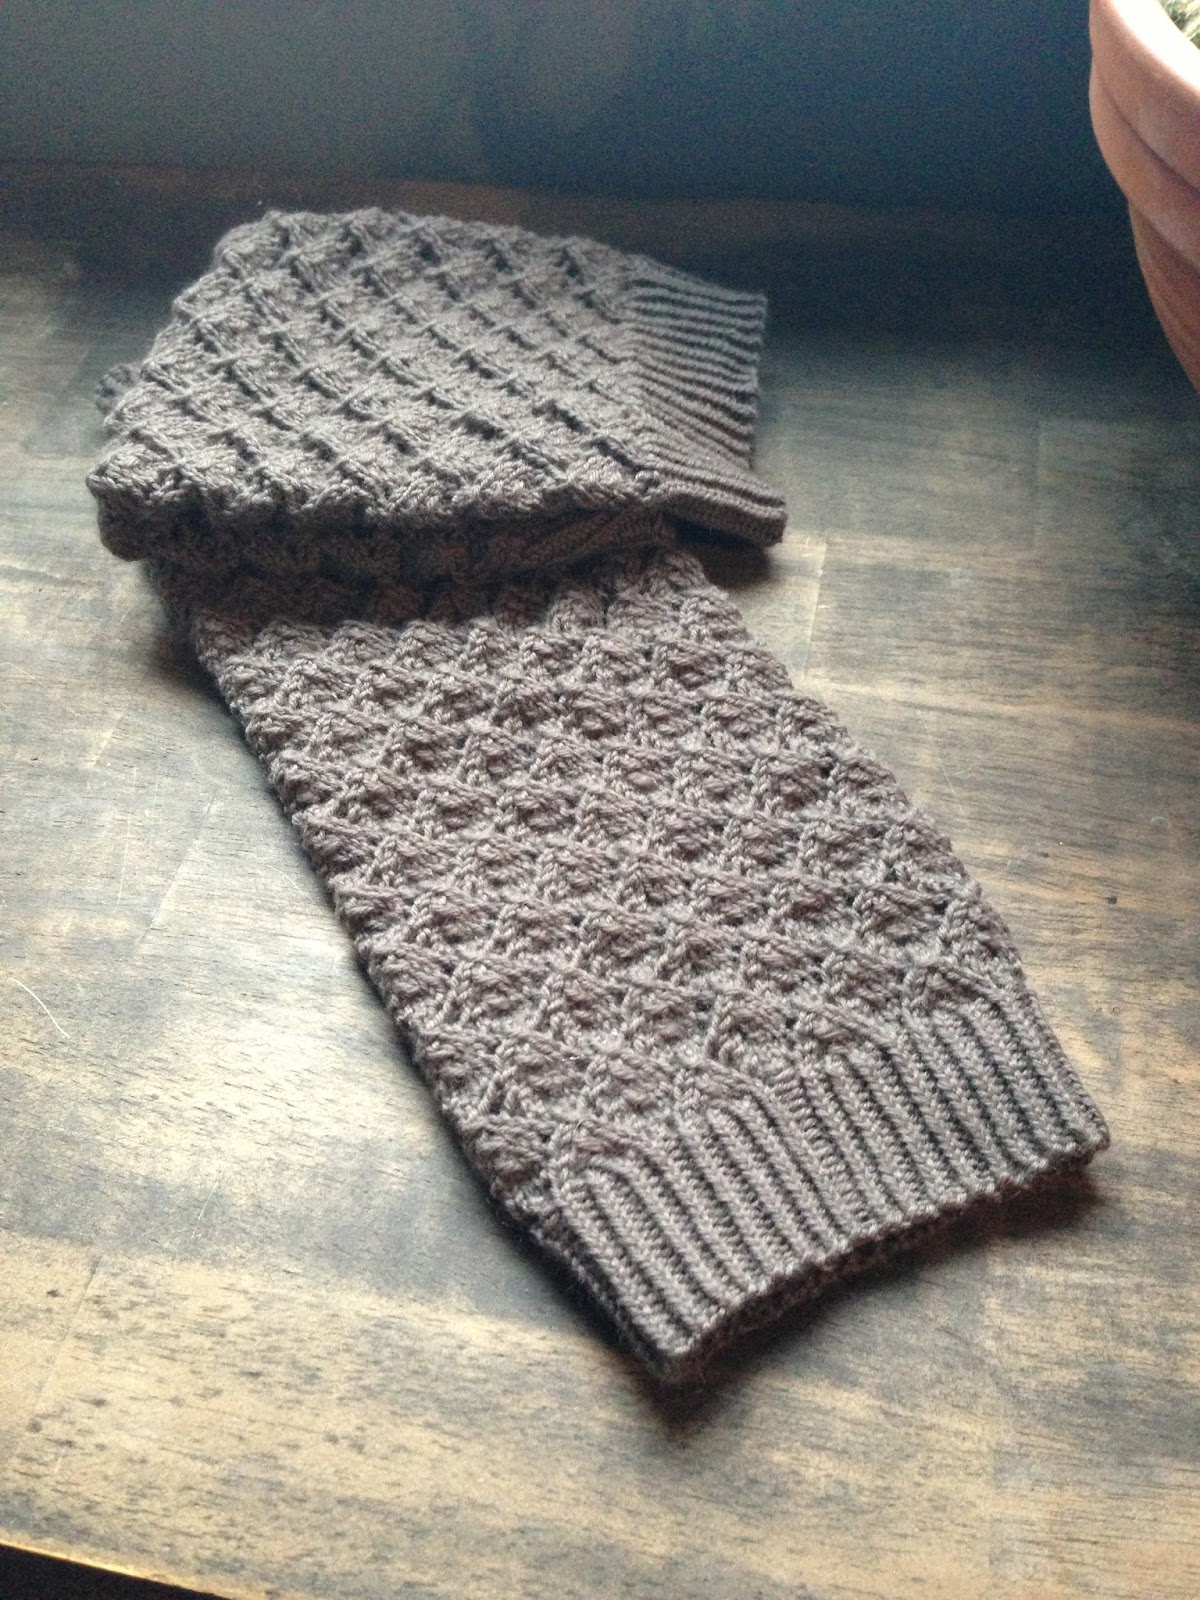 Autumn Hill Llamas & Fiber: First Knitting Pattern! Lace Leaf Legwarmers